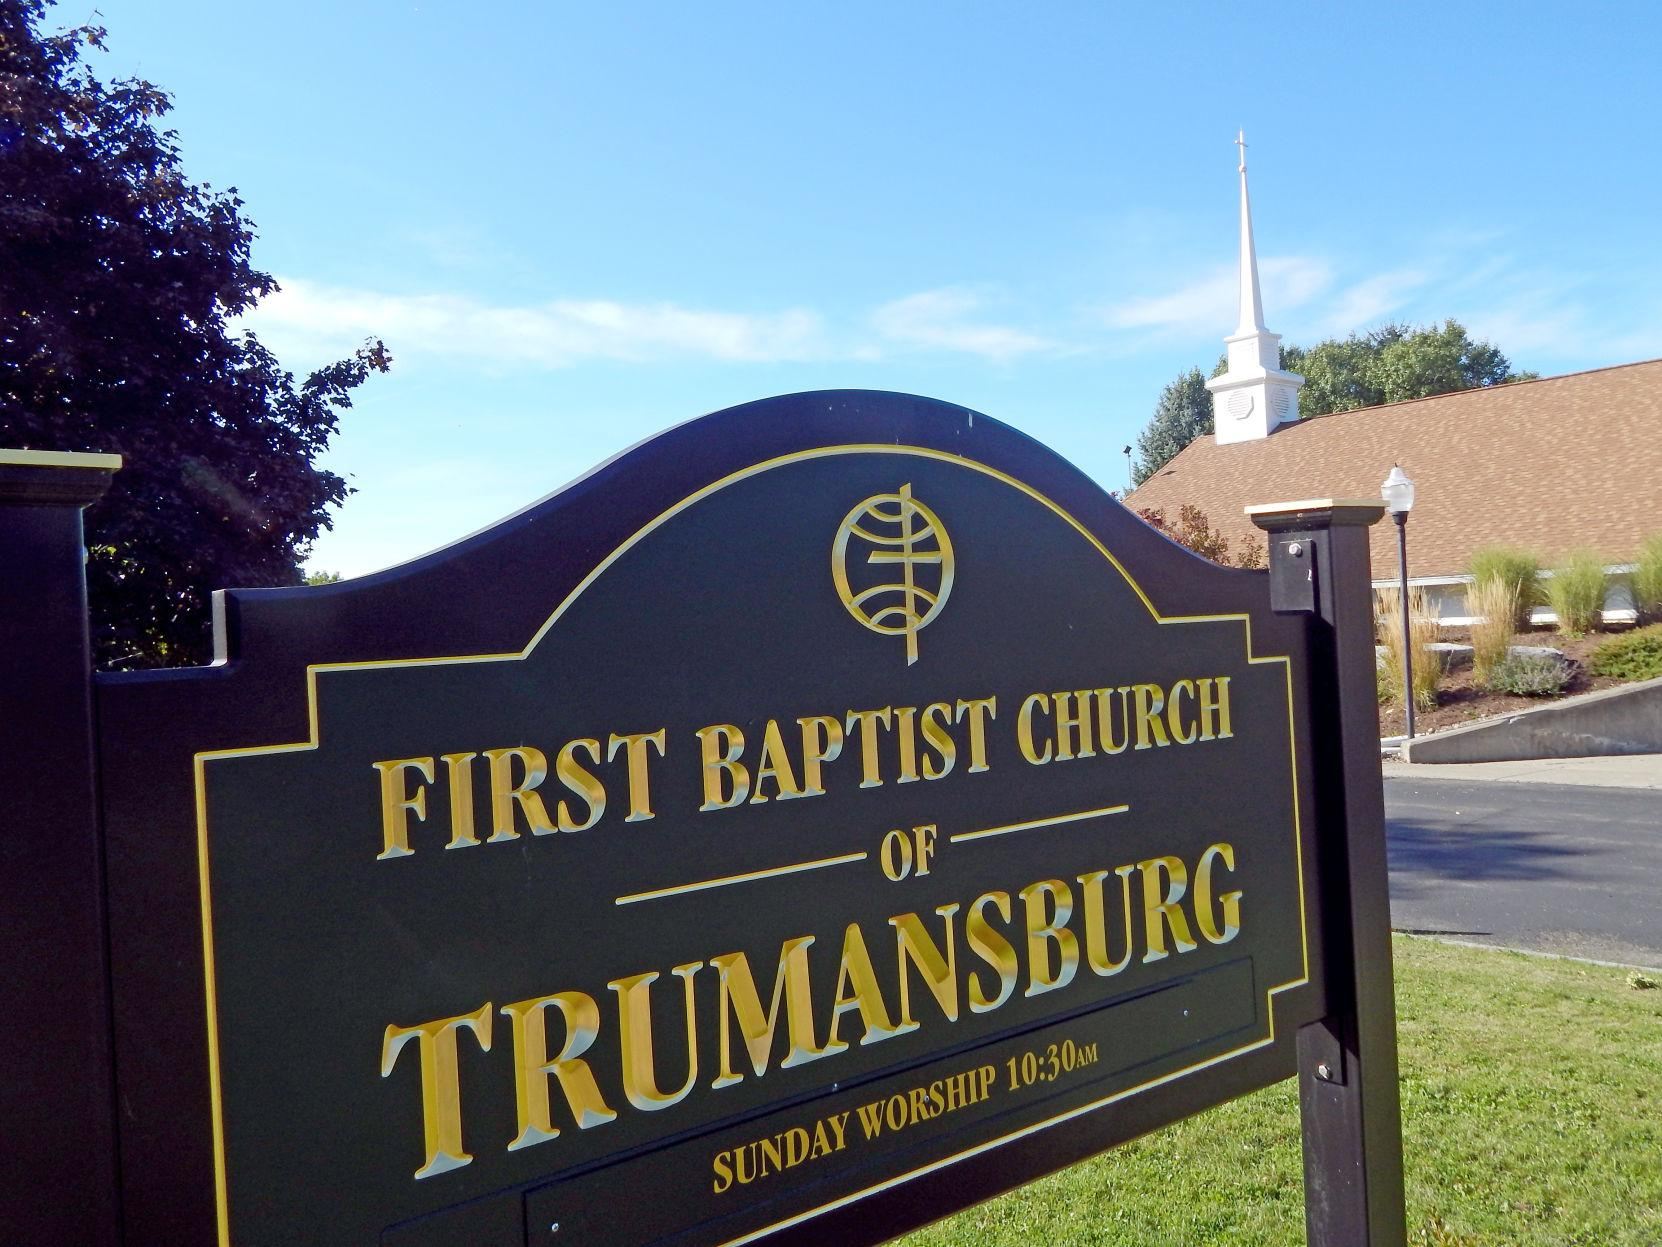 First Baptist Church celebrates 200 years in Trumansburg